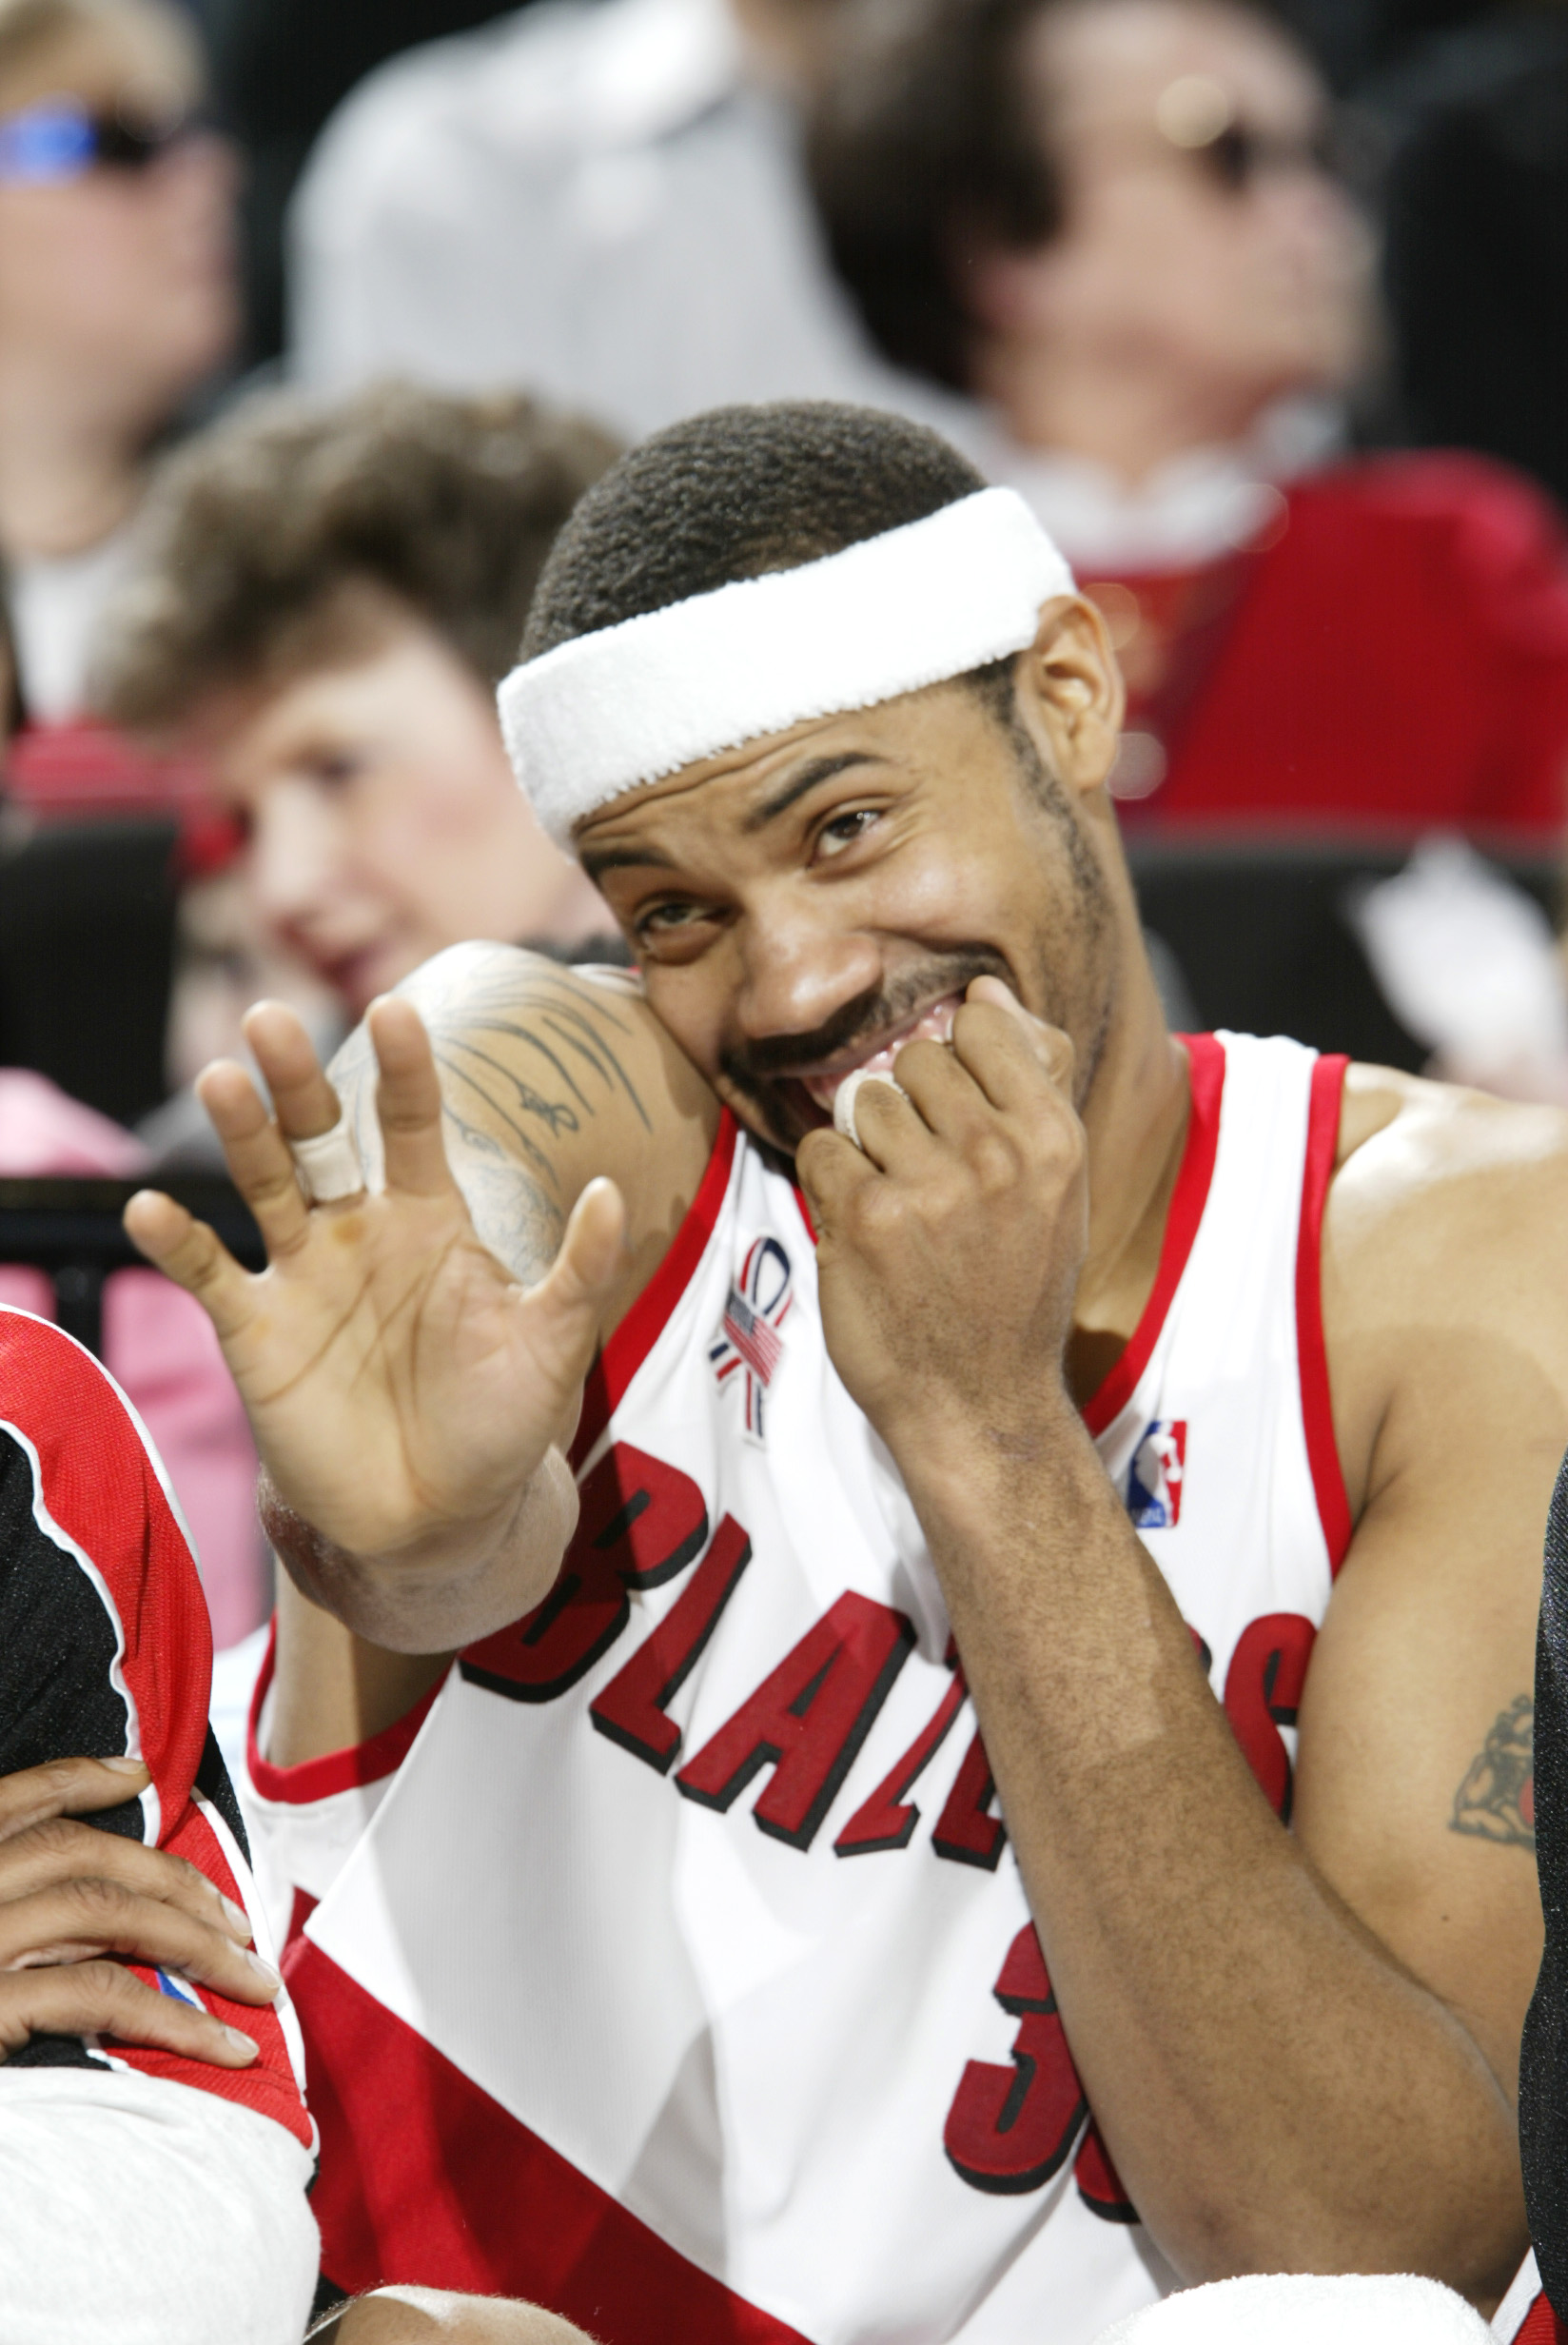 Rasheed Wallace smiles and waves on the bench